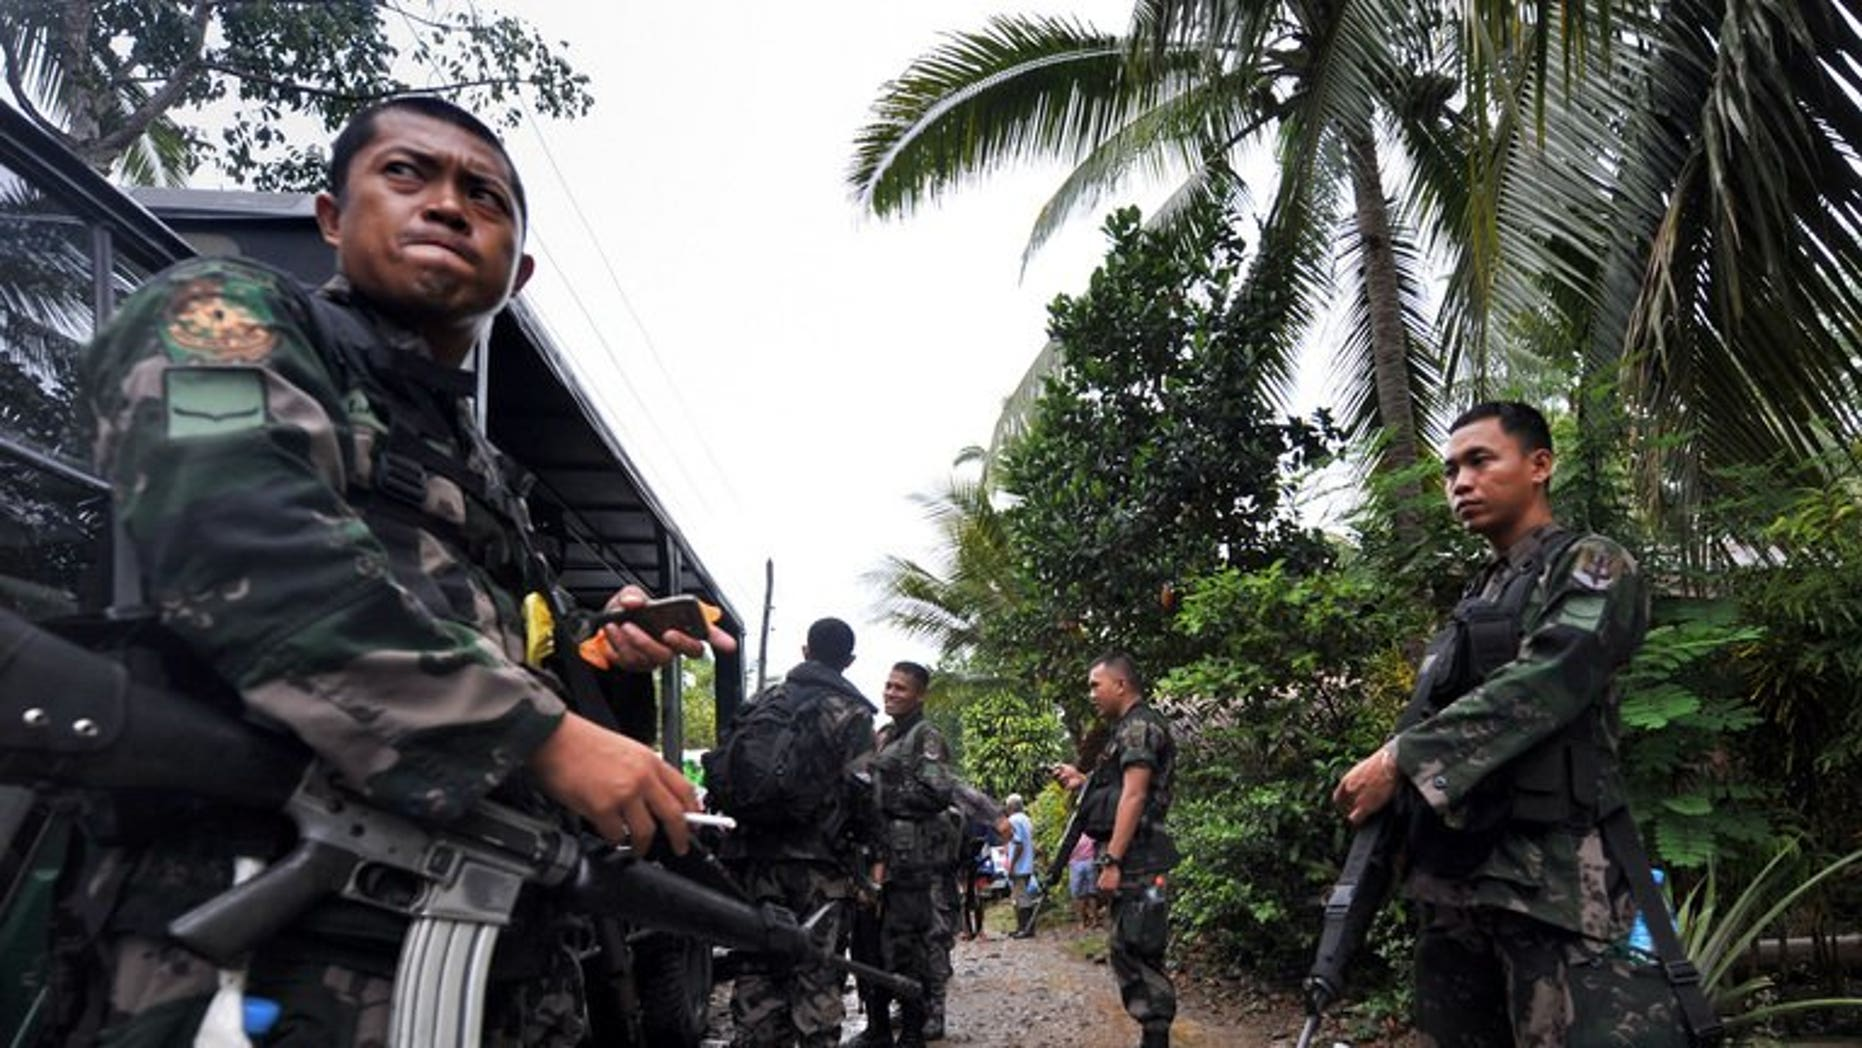 This file photo shows members of a police special action force manning a checkpoint on the southern Philippine island of Mindanao, on December 12, 2009. Six people were killed and more than two dozen wounded when a bomb exploded at a restaurant in a town on Mindanao late on Friday, July 26, 2013.